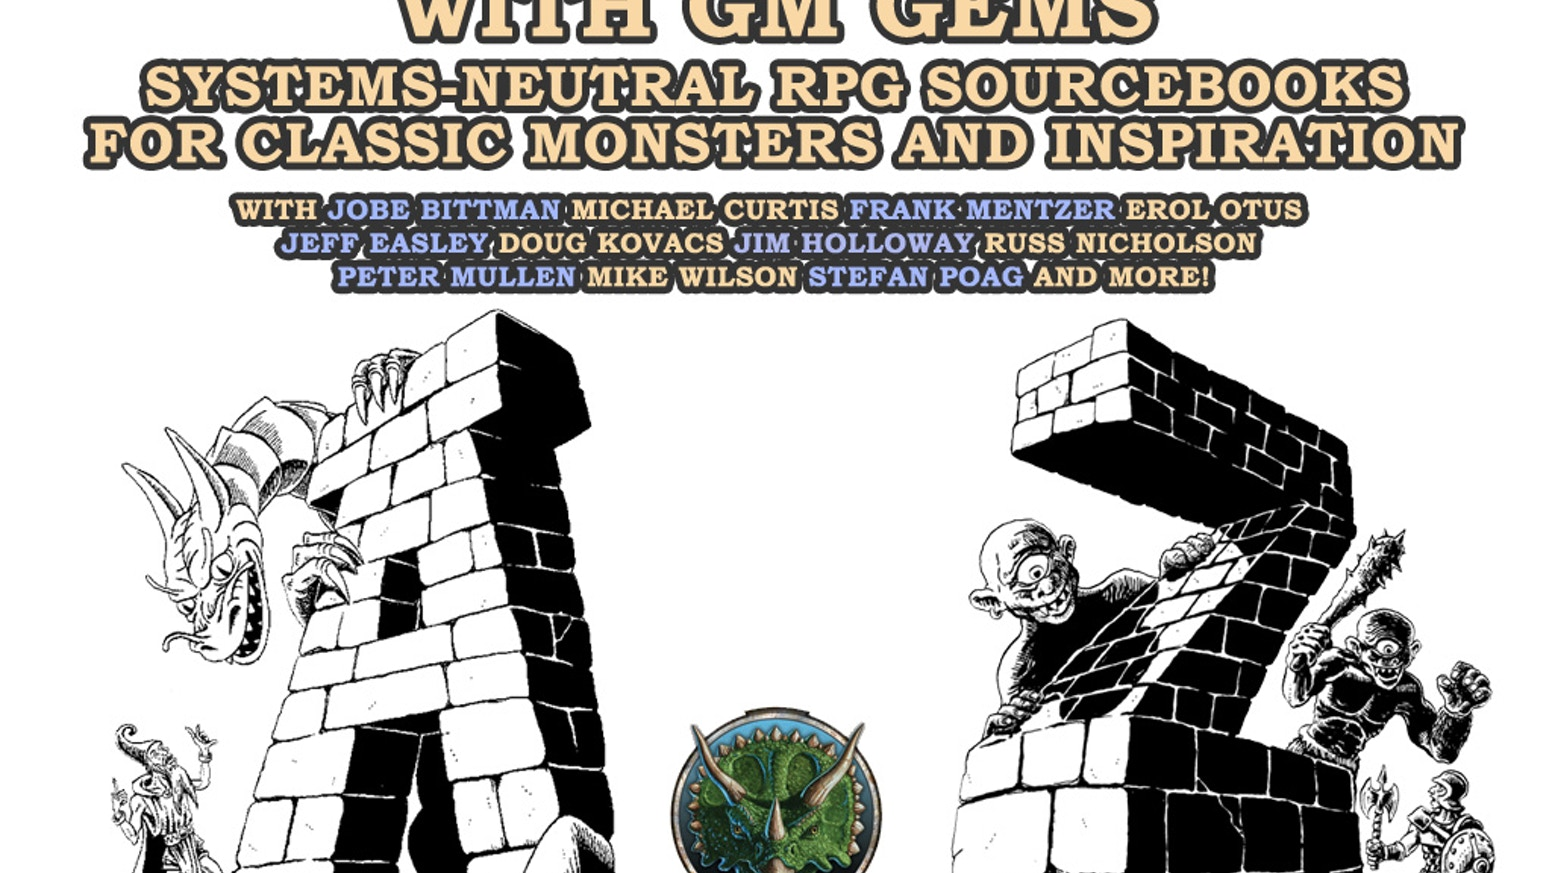 the monster alphabet with gm gems by goodman games kickstarter